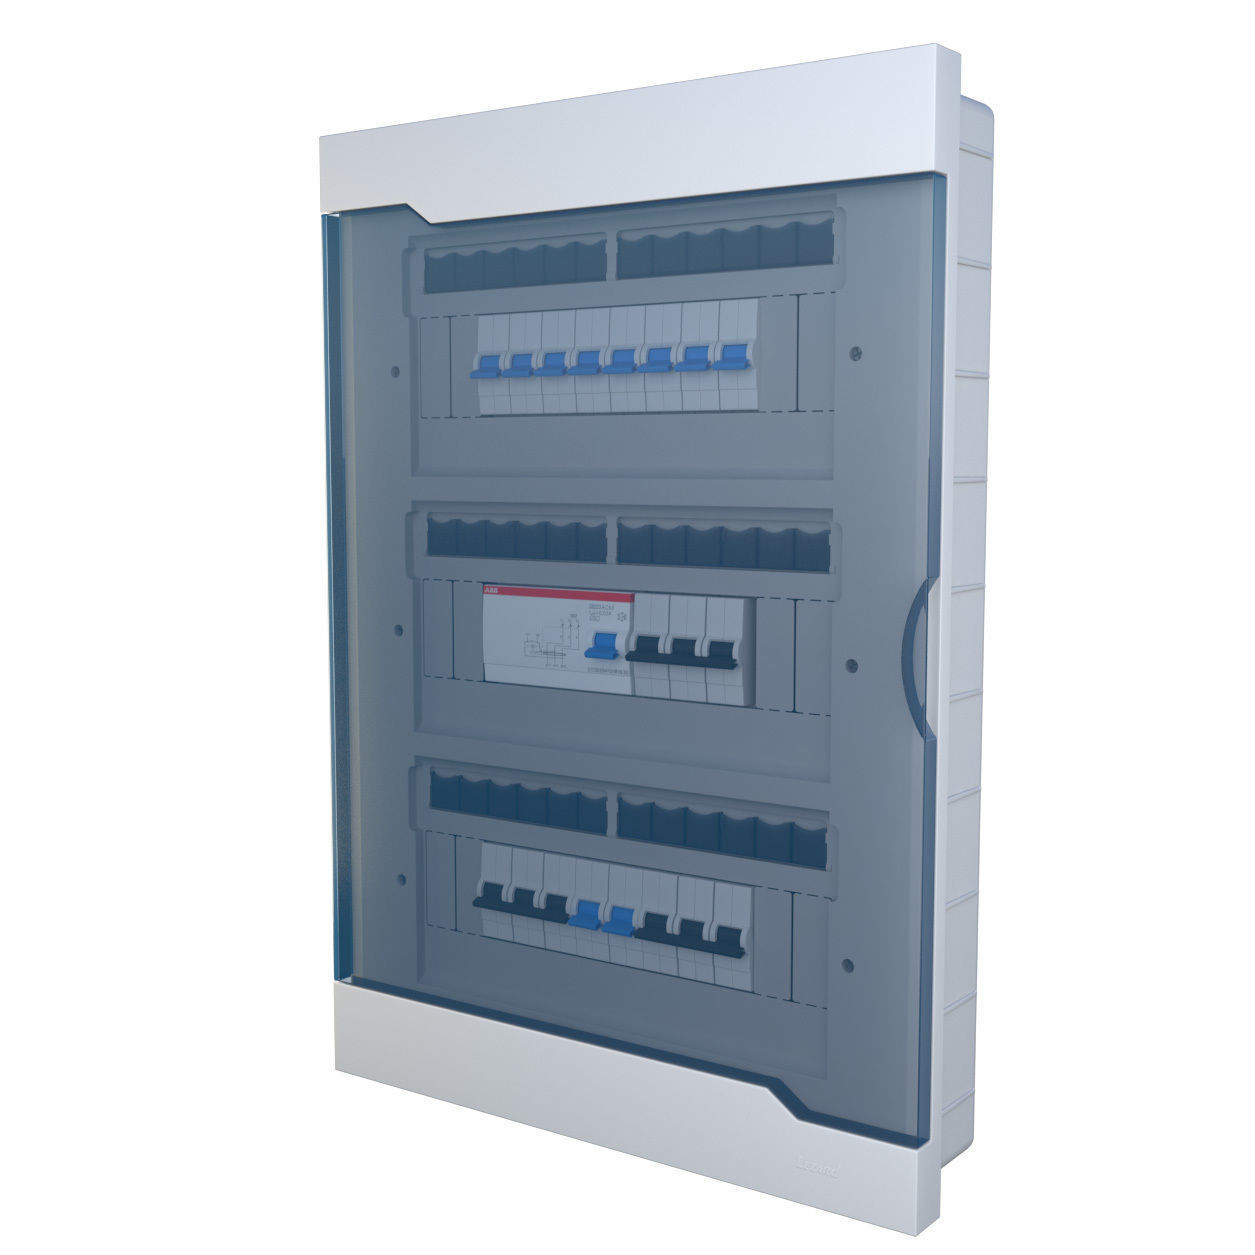 Electrical panel Fuse Box 3D model | CGTraderCGTrader